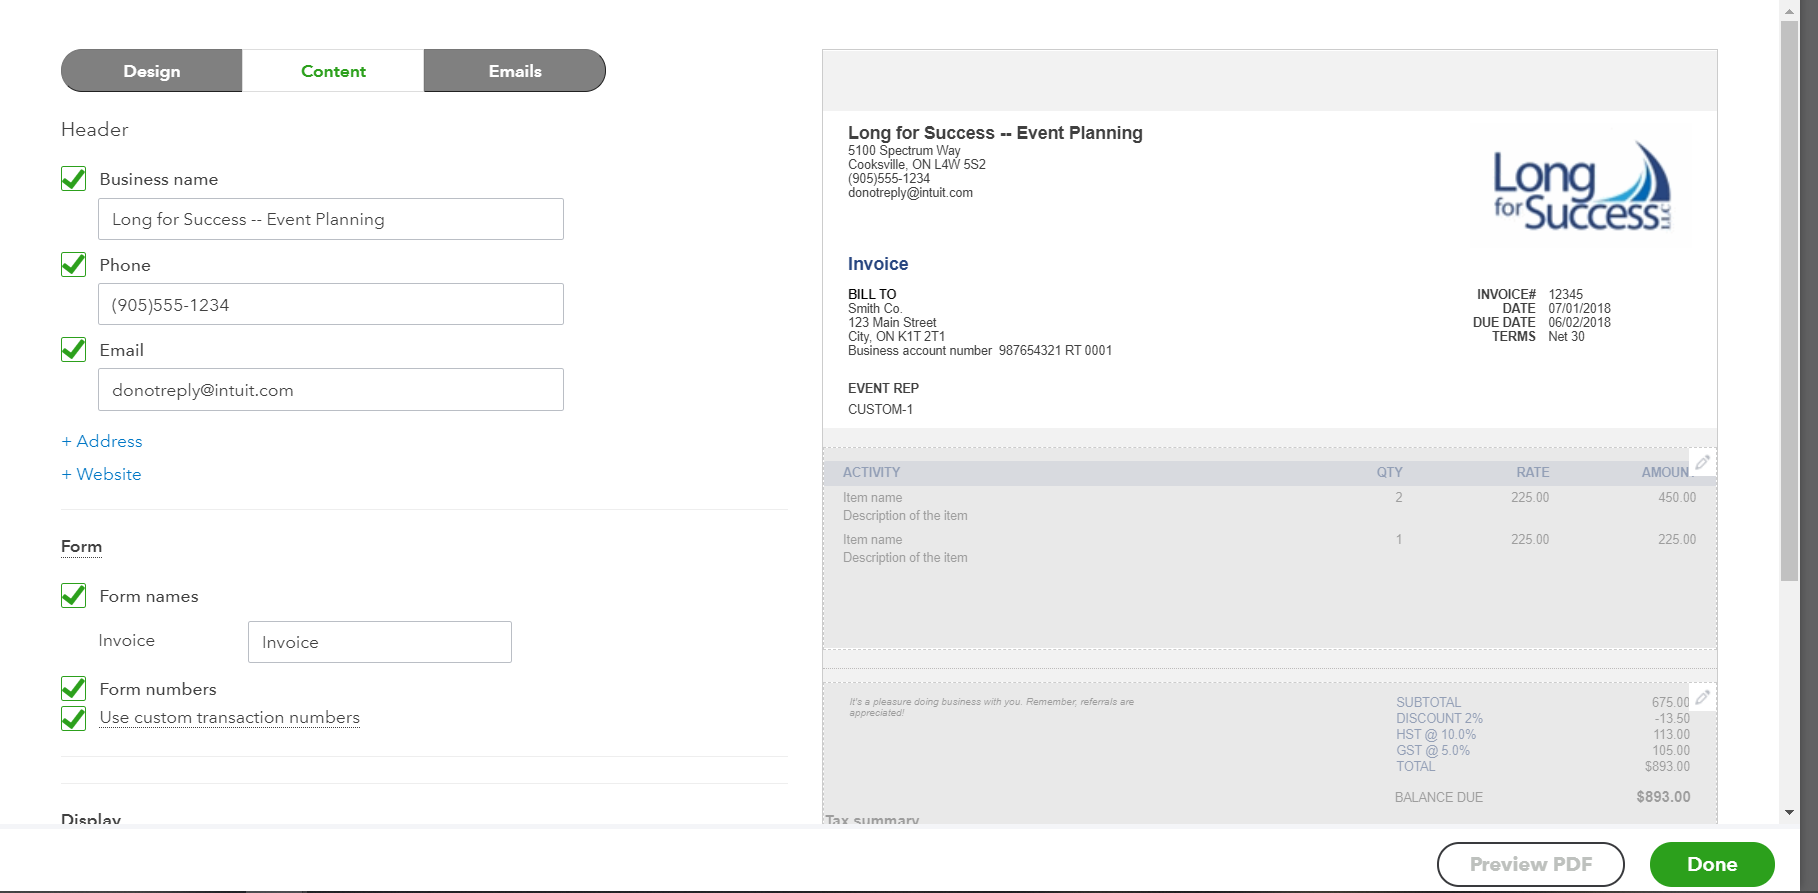 Customizing Your Quickbooks Online Invoice Templates My Cloud Bookkeeping Quickbooks Expert